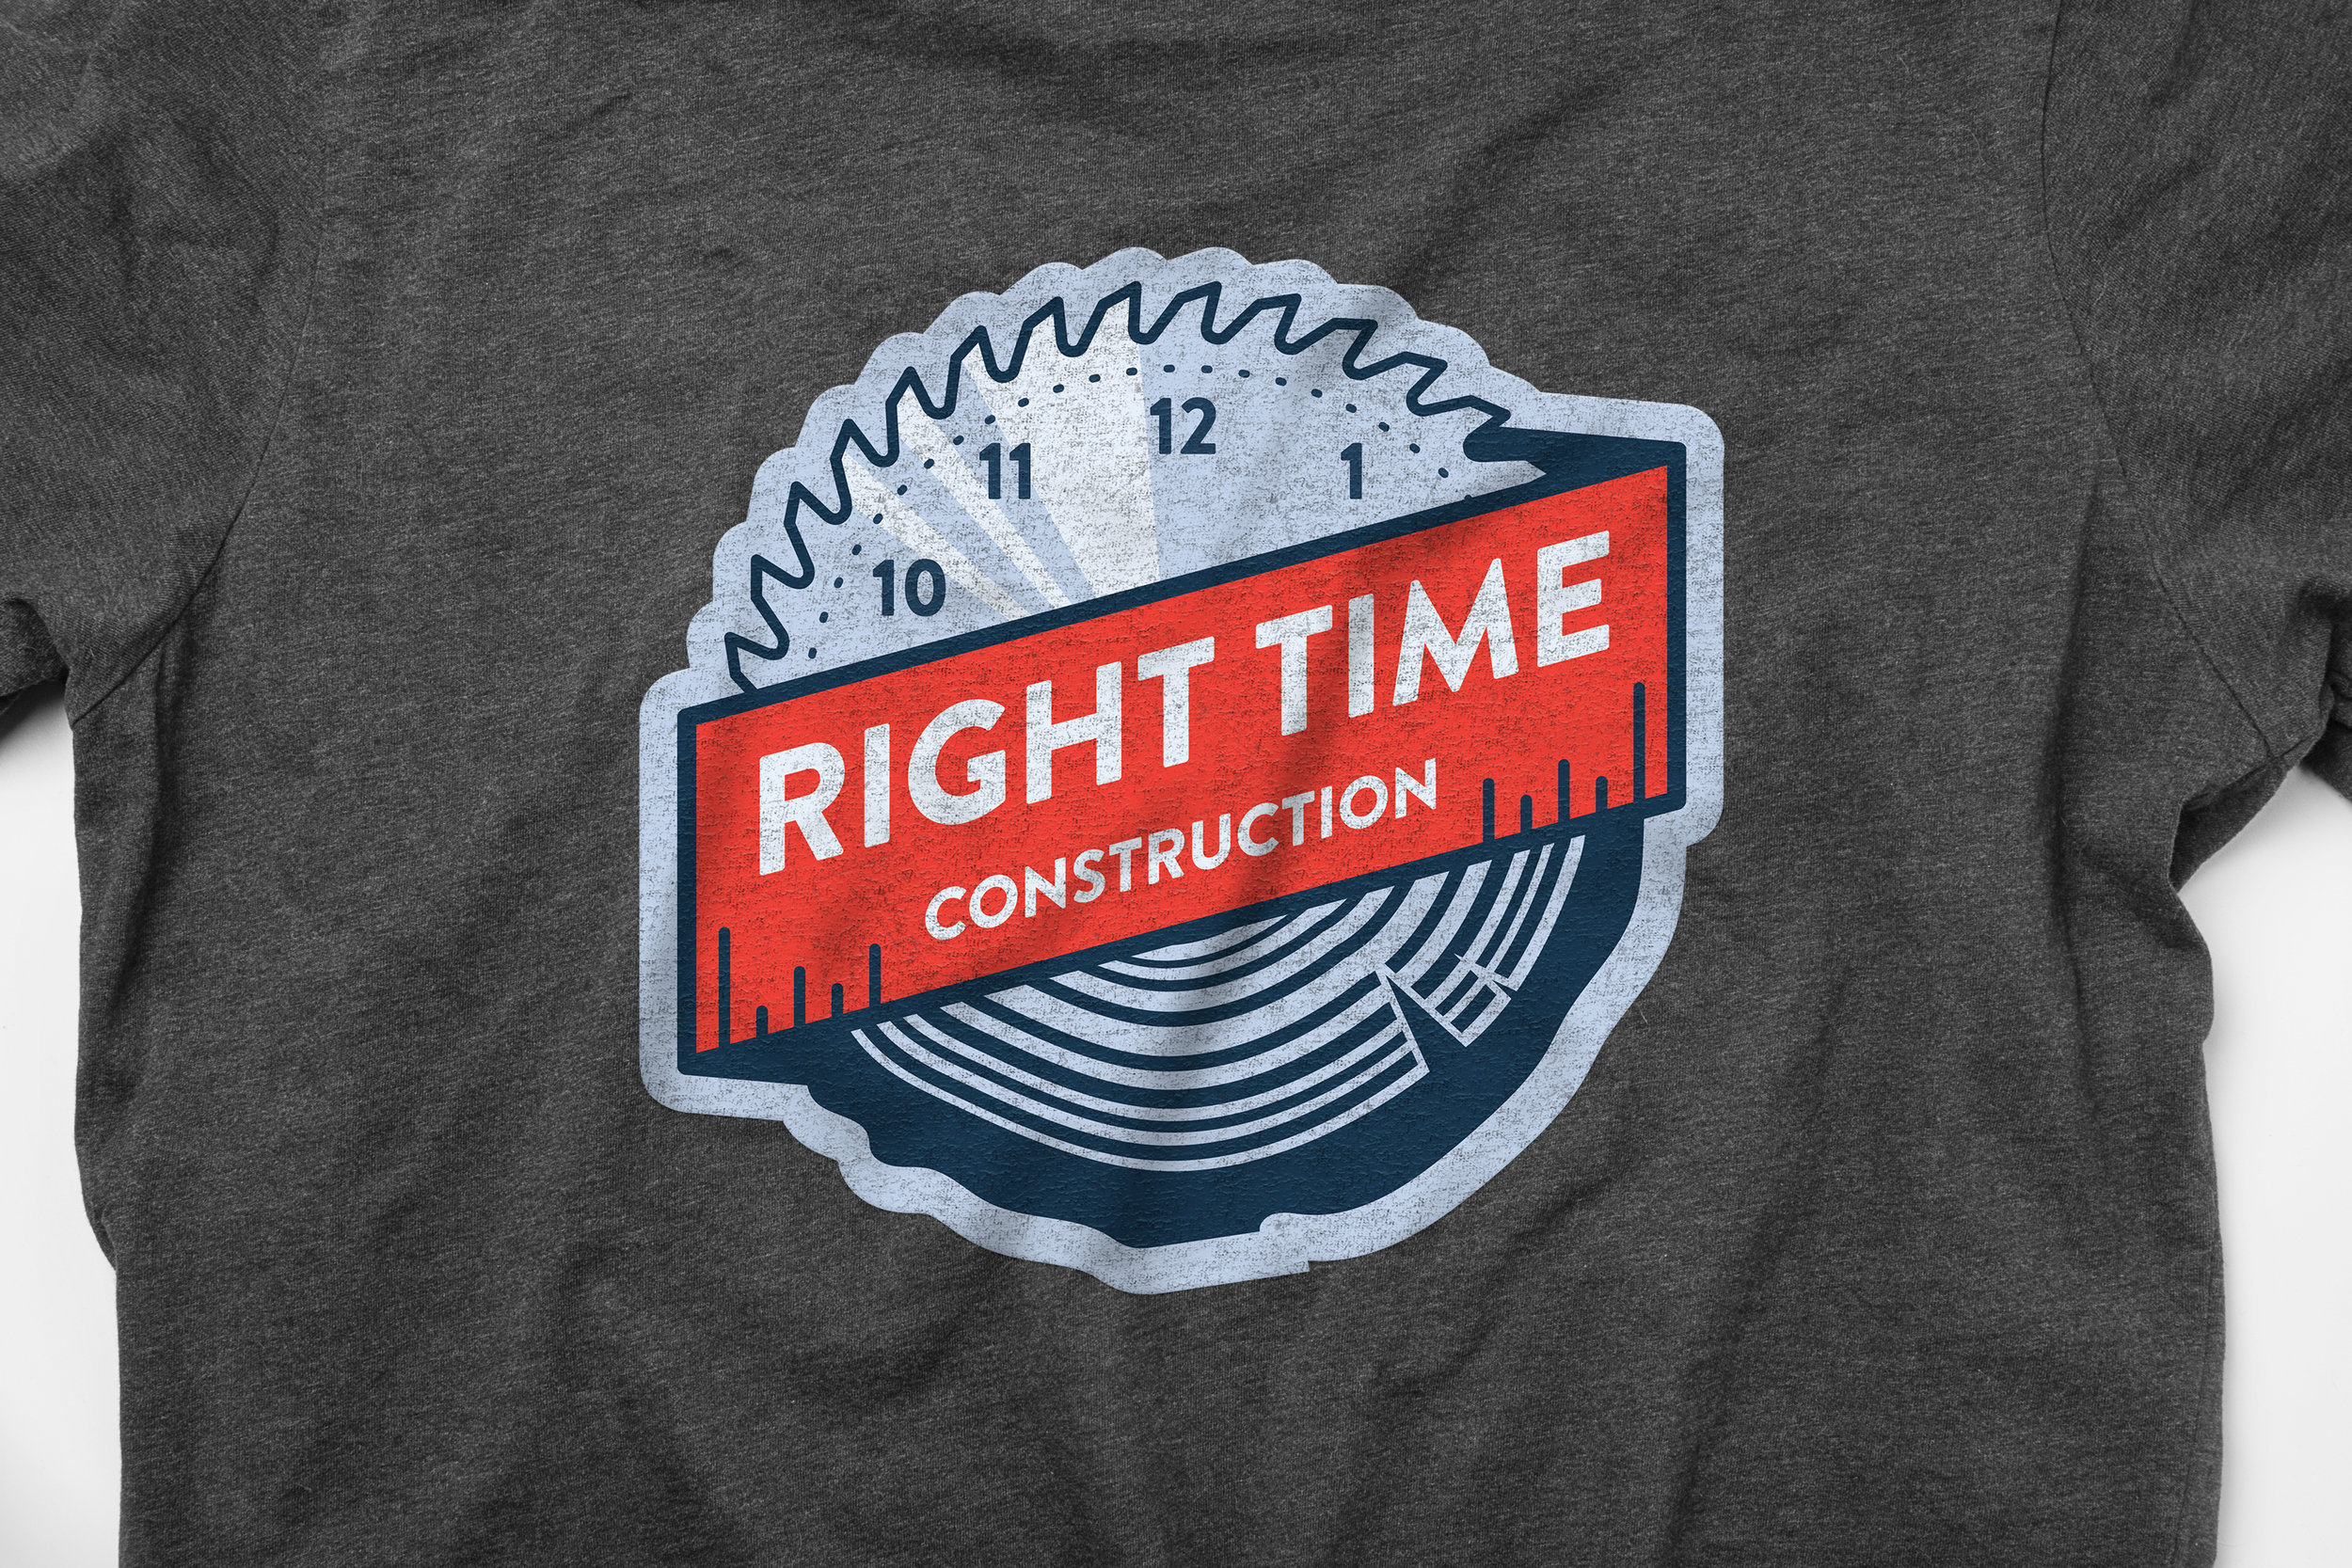 Right_Time_Construction_Tshirt_Mockup2.jpg